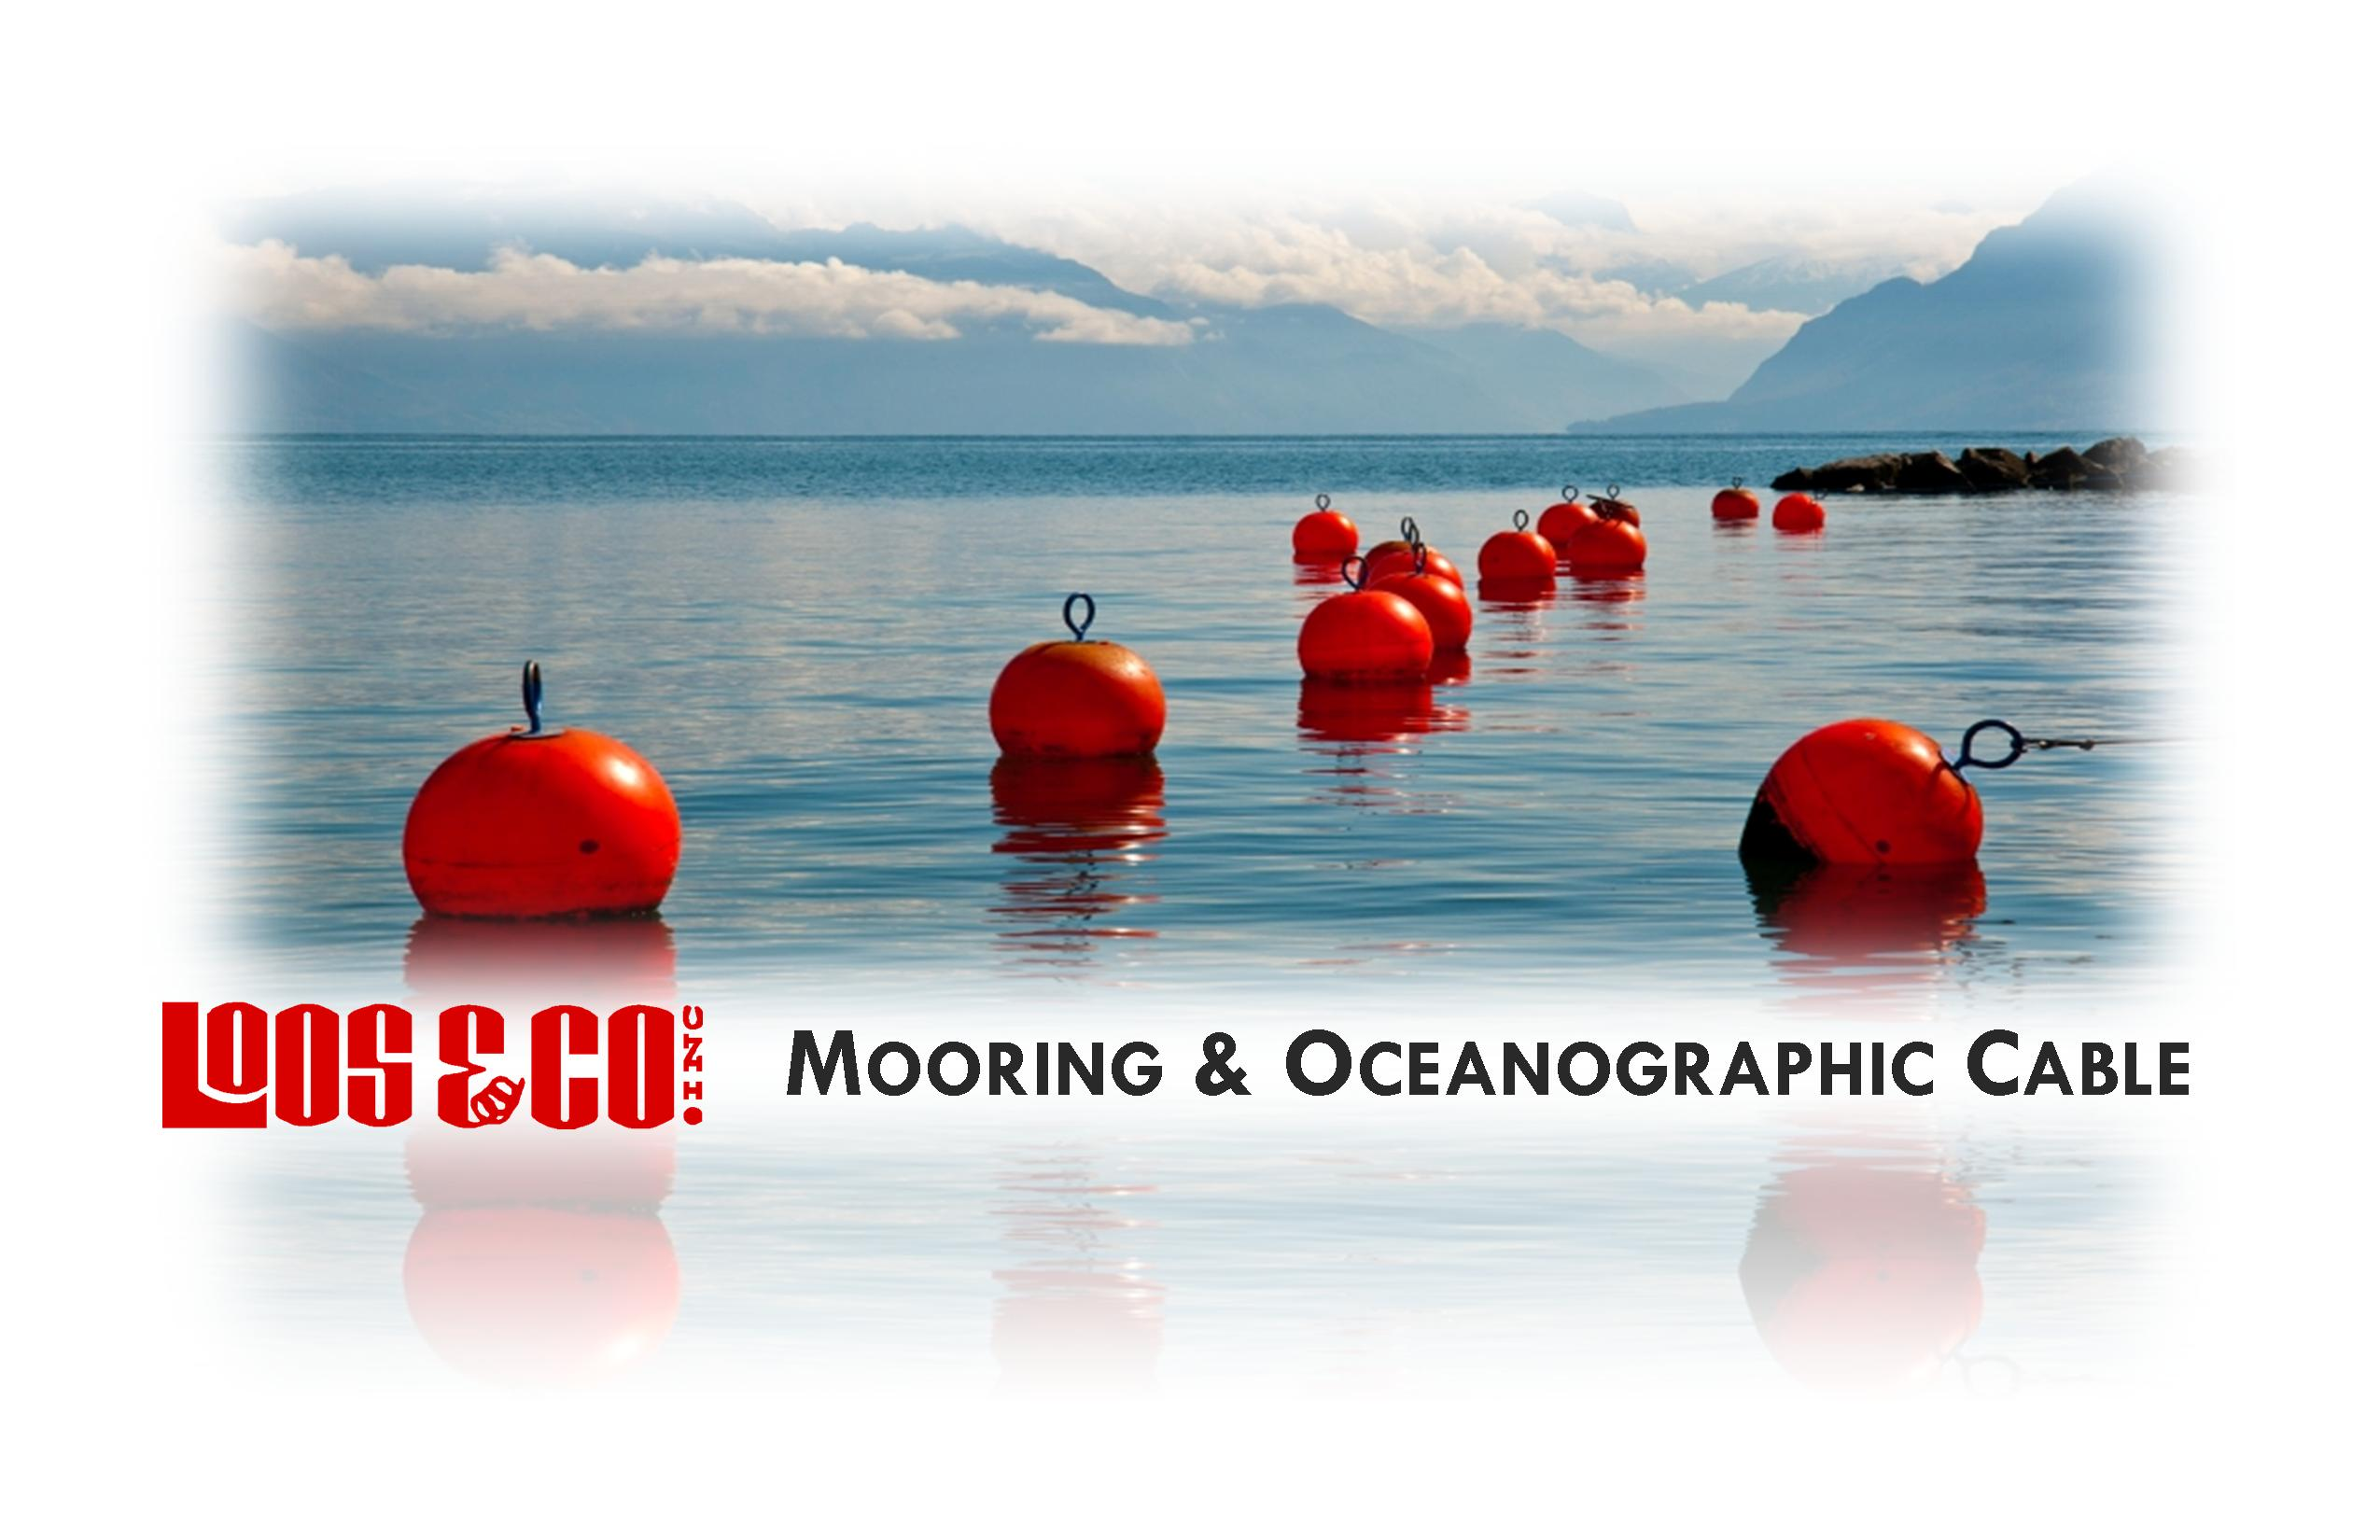 Mooring & Oceanographic Cable - Loos & Co., Inc.